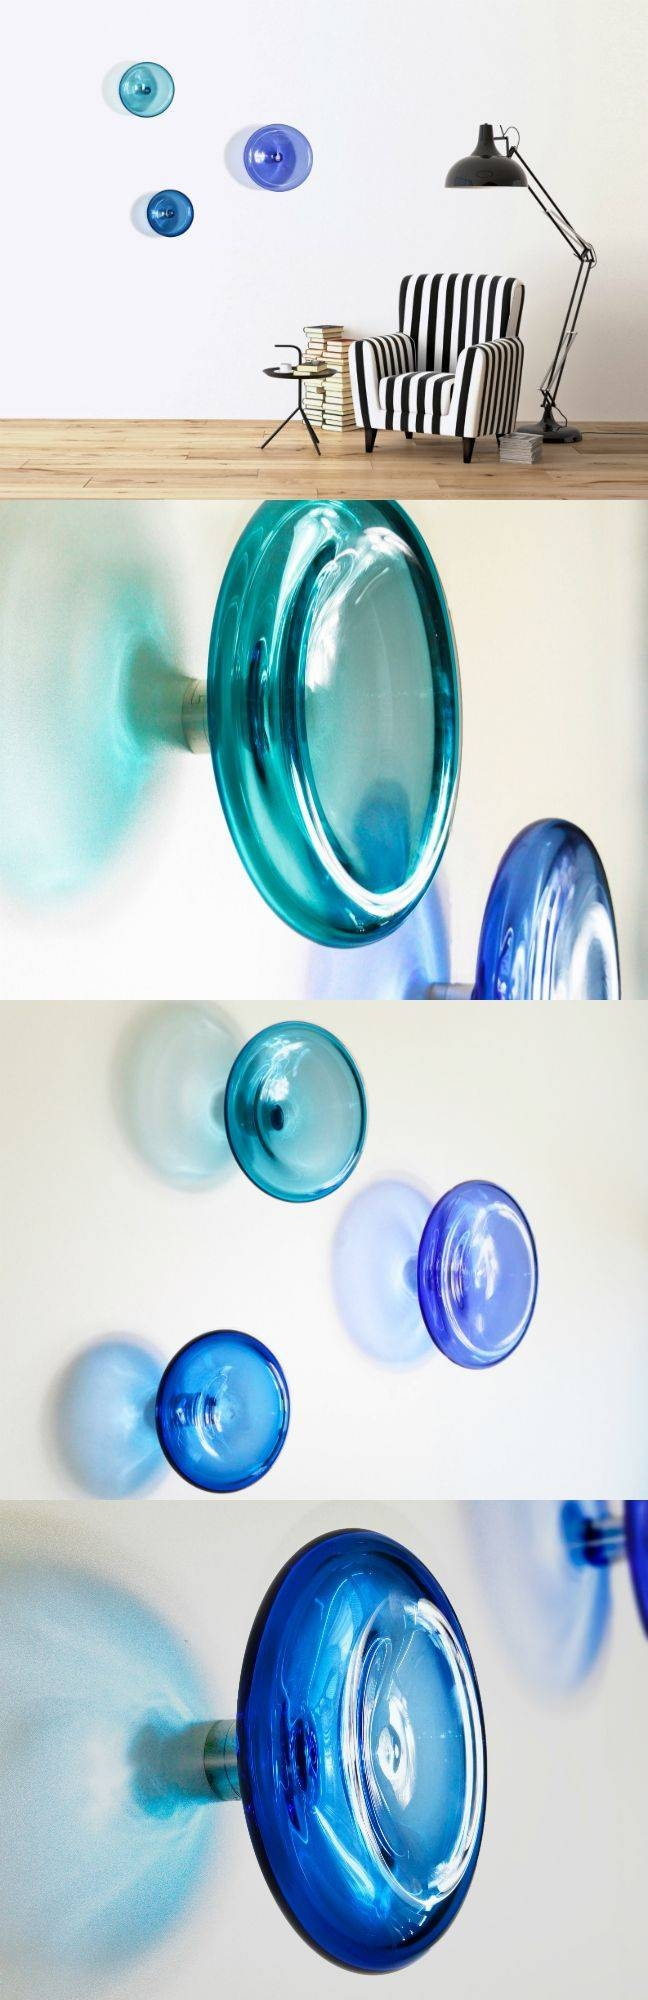 32 Best Glass Wall Art Installations Images On Pinterest | Art Within Current Modern Glass Wall Art (View 5 of 20)